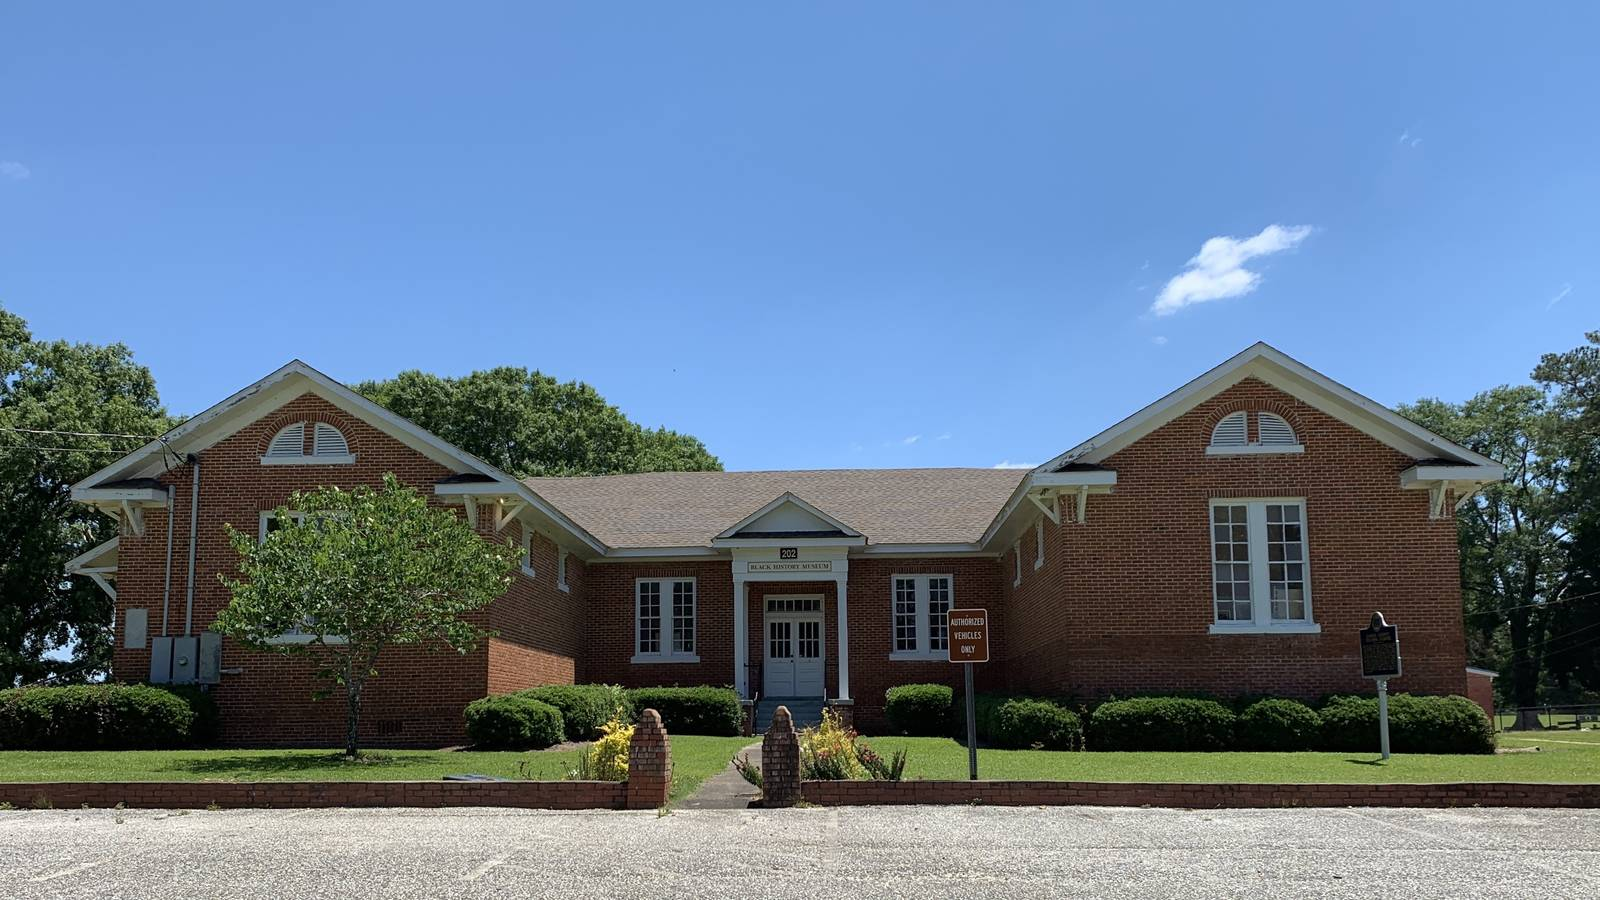 <p>The Elmore County Black History Museum (formerly the six-teacher Elmore County Training School) in Wetumpka, Alabama</p>